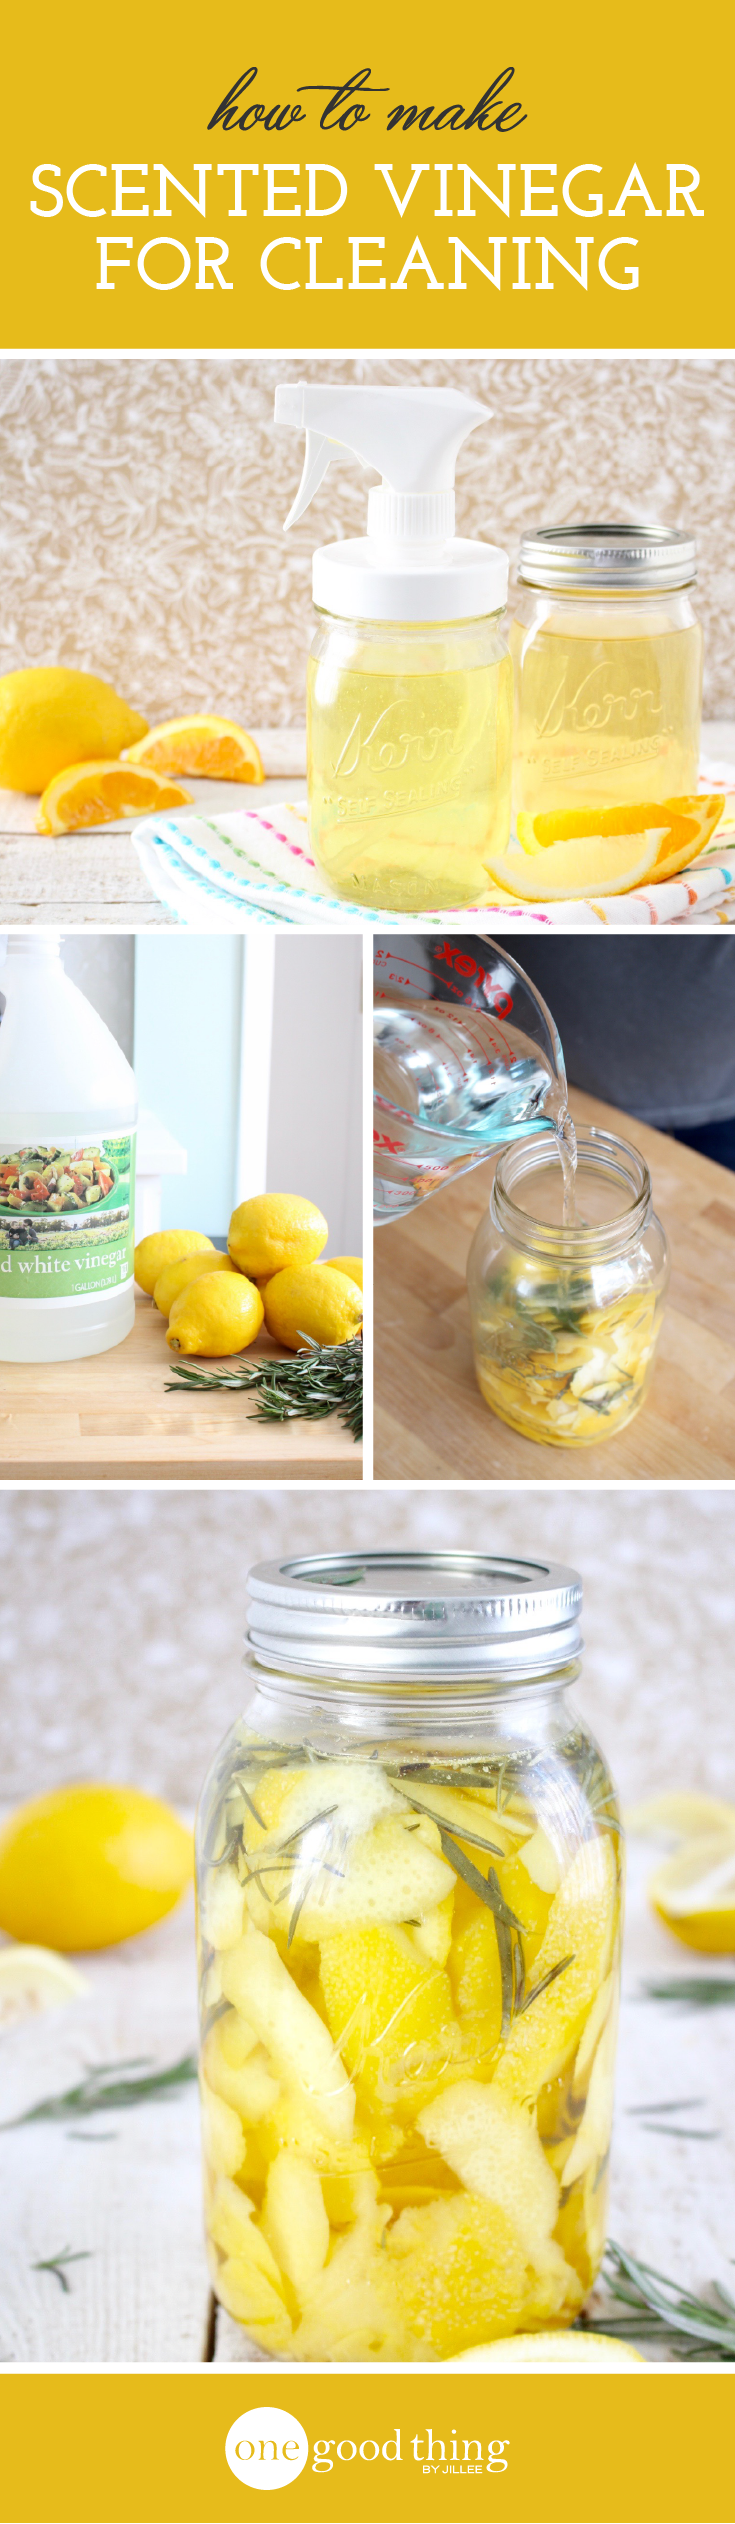 How To Make Scented Cleaning Vinegar